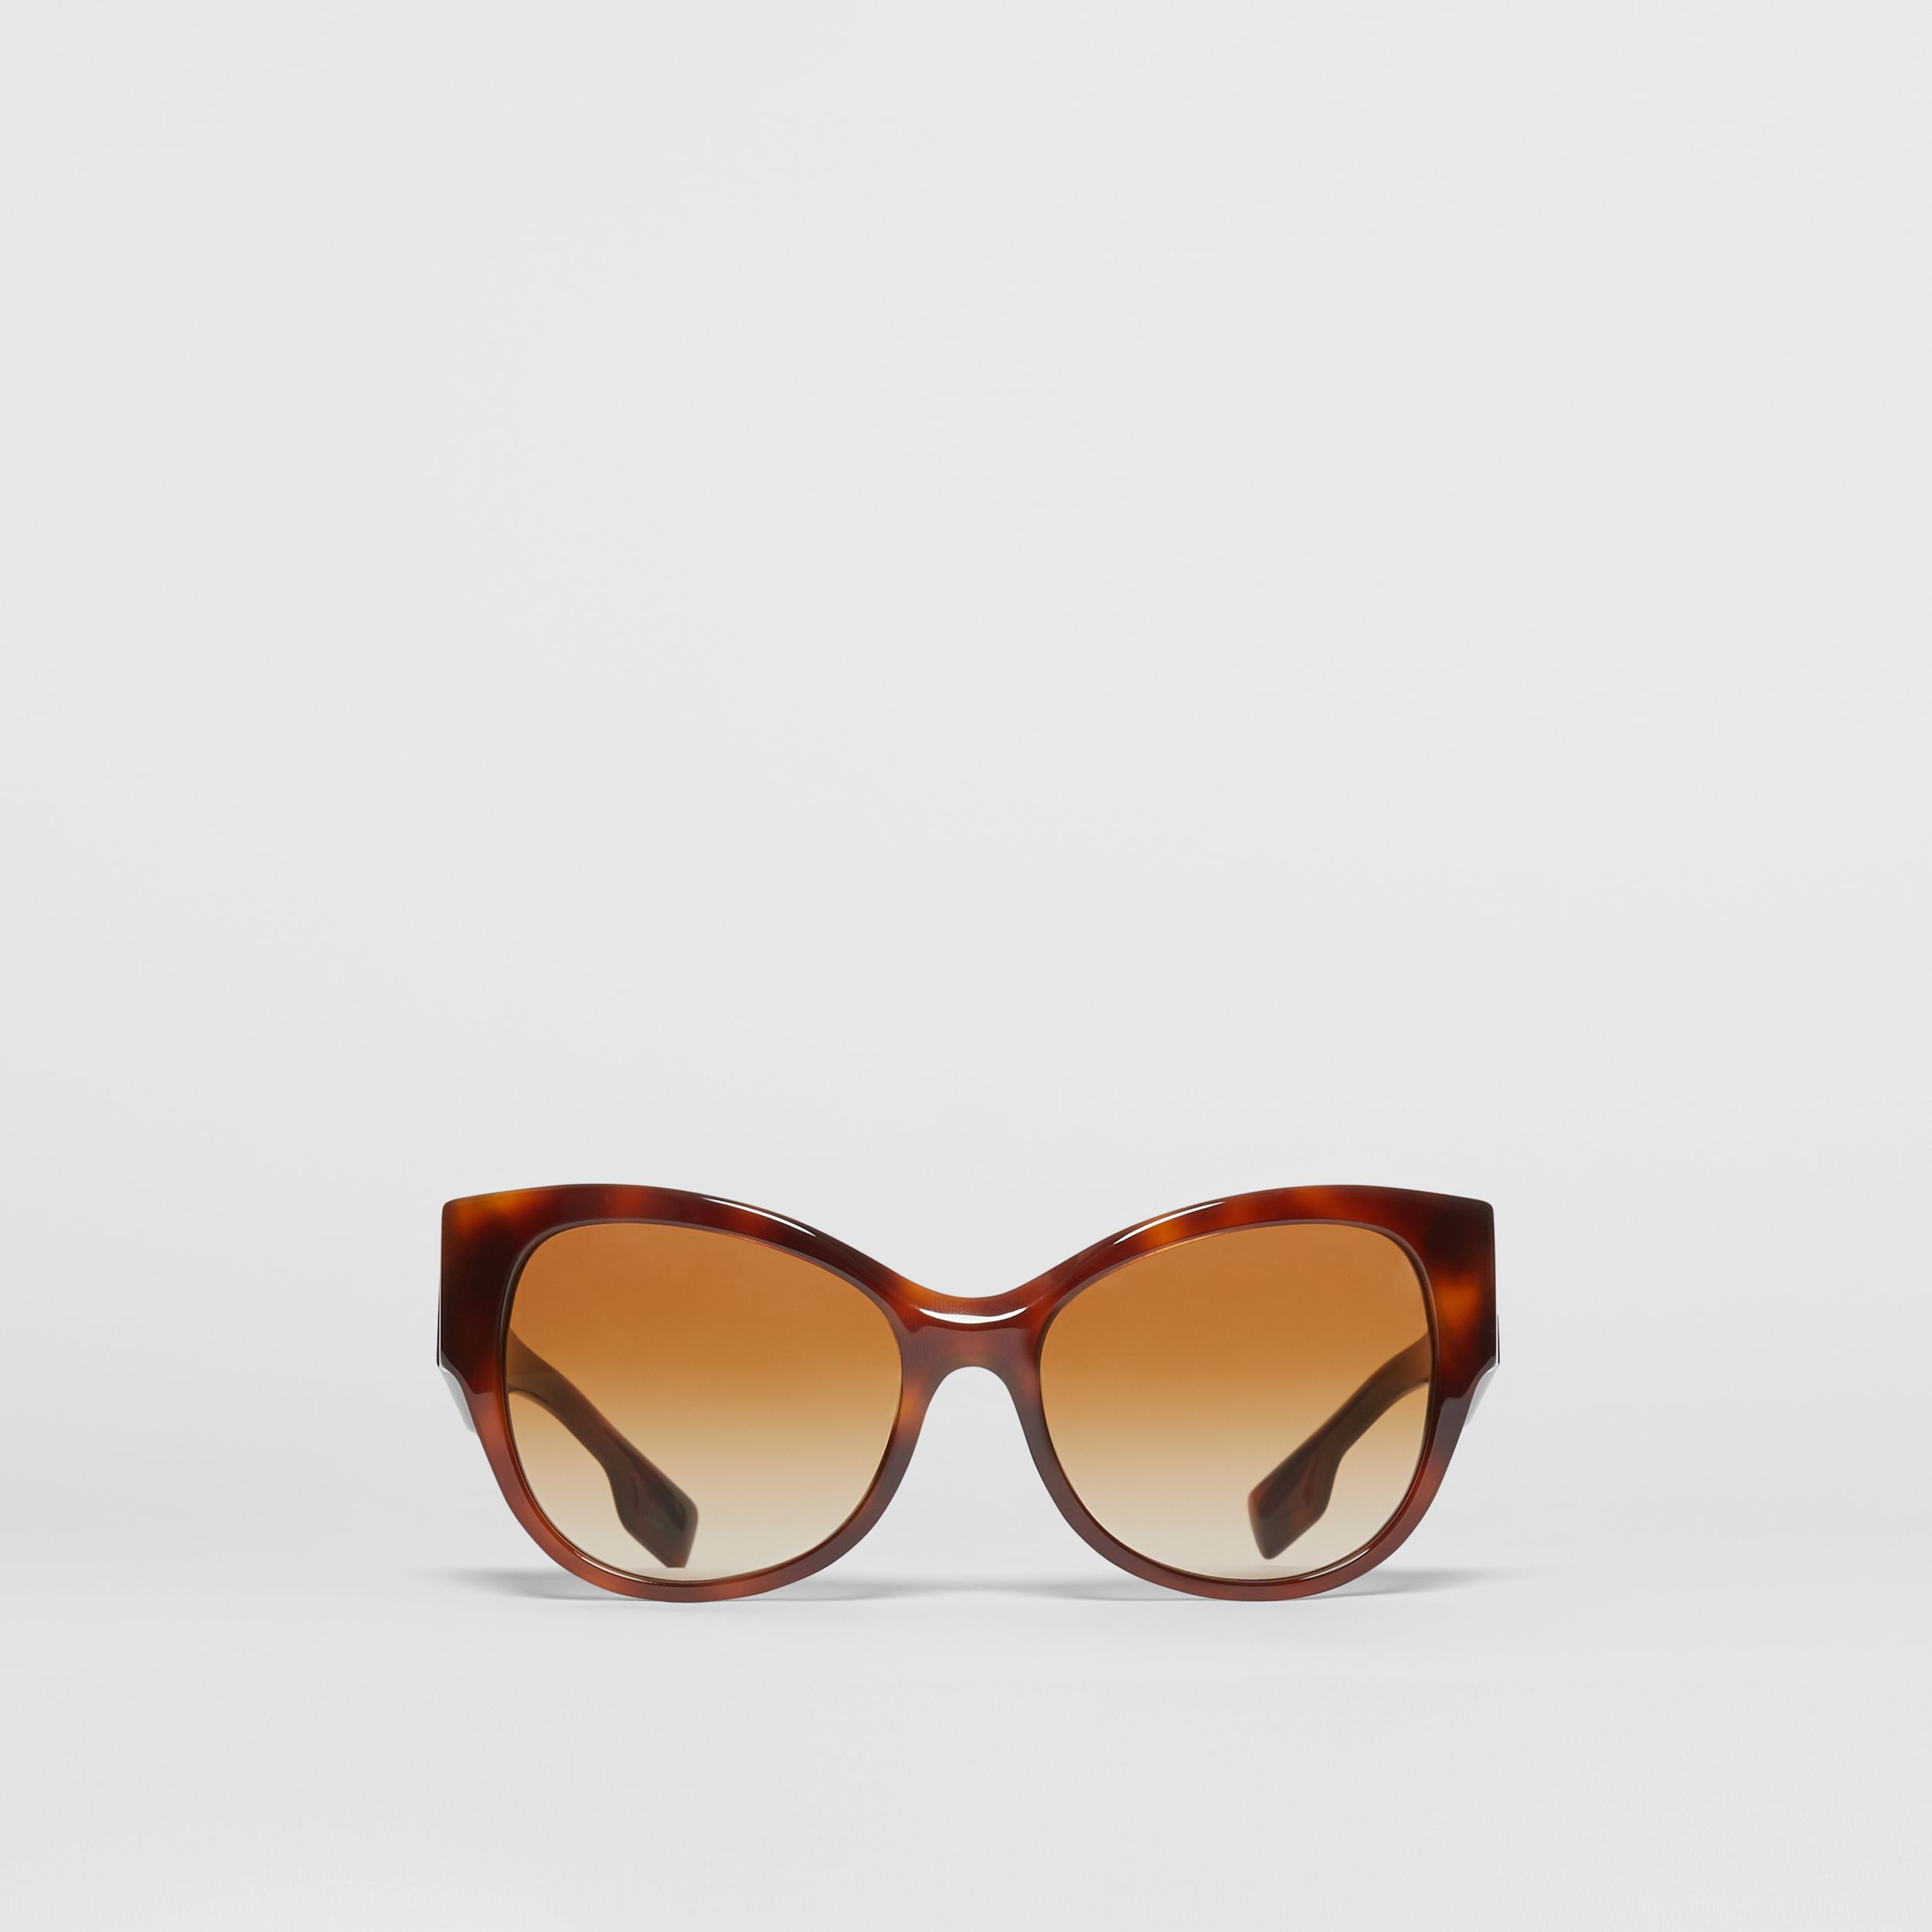 Butterfly Frame Sunglasses in Amber Tortoiseshell - Women | Burberry Canada - 1